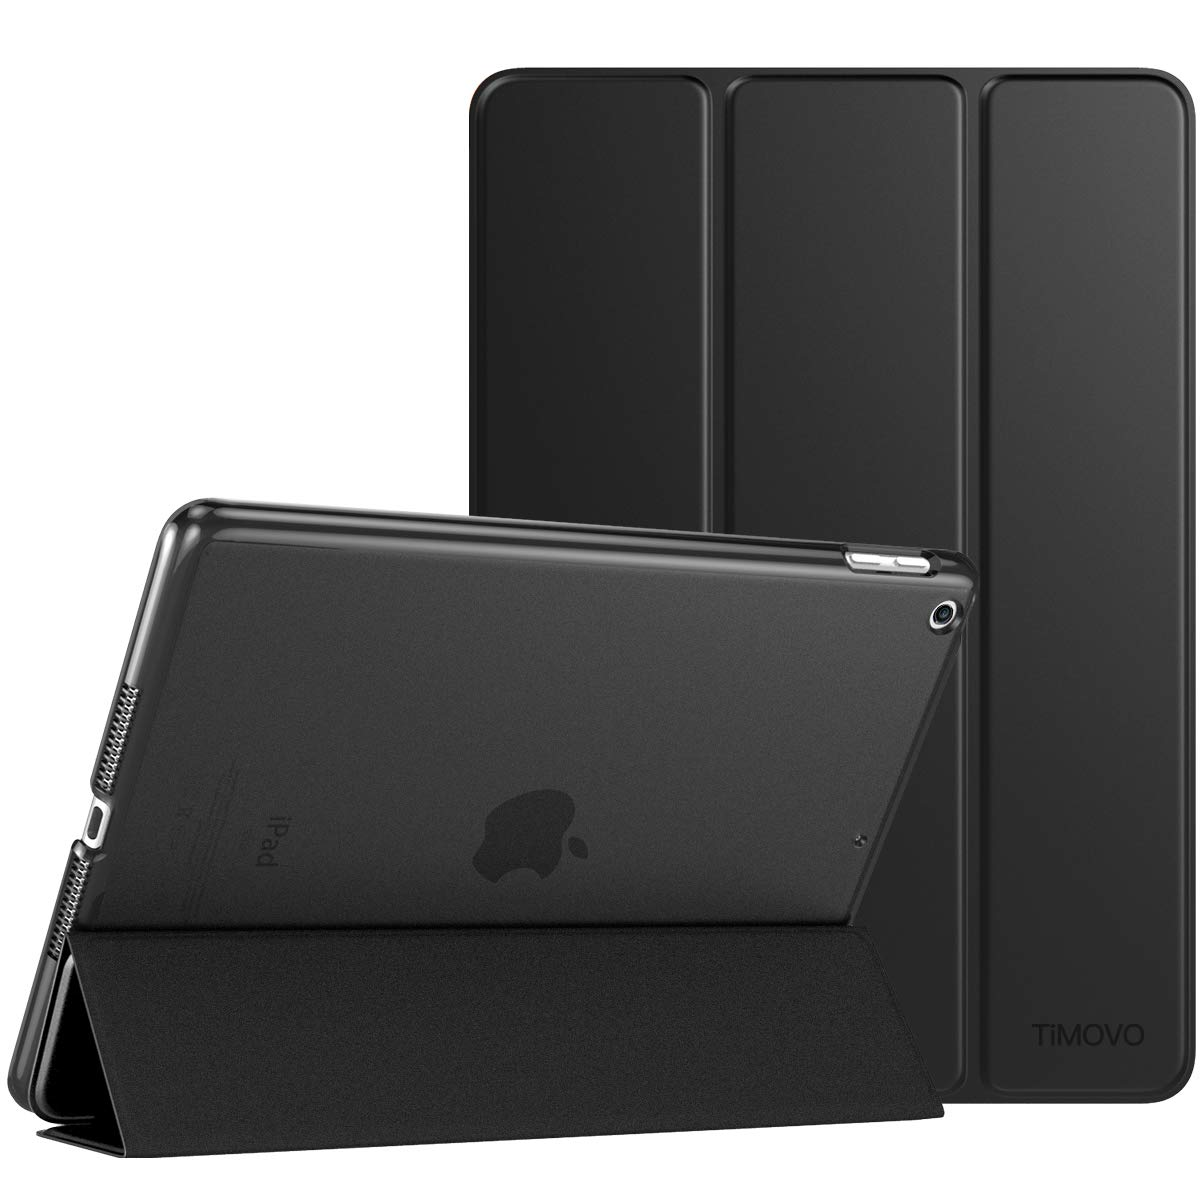 TiMOVO Cover Compatible for iPad 9.7 Case, 2018/2017 iPad Case(6th/5th Generation), Slim Lightweight Smart Case with Auto Sleep/Wake, Translucent Frosted Back Cover for iPad 9.7 2018/2017 - Black